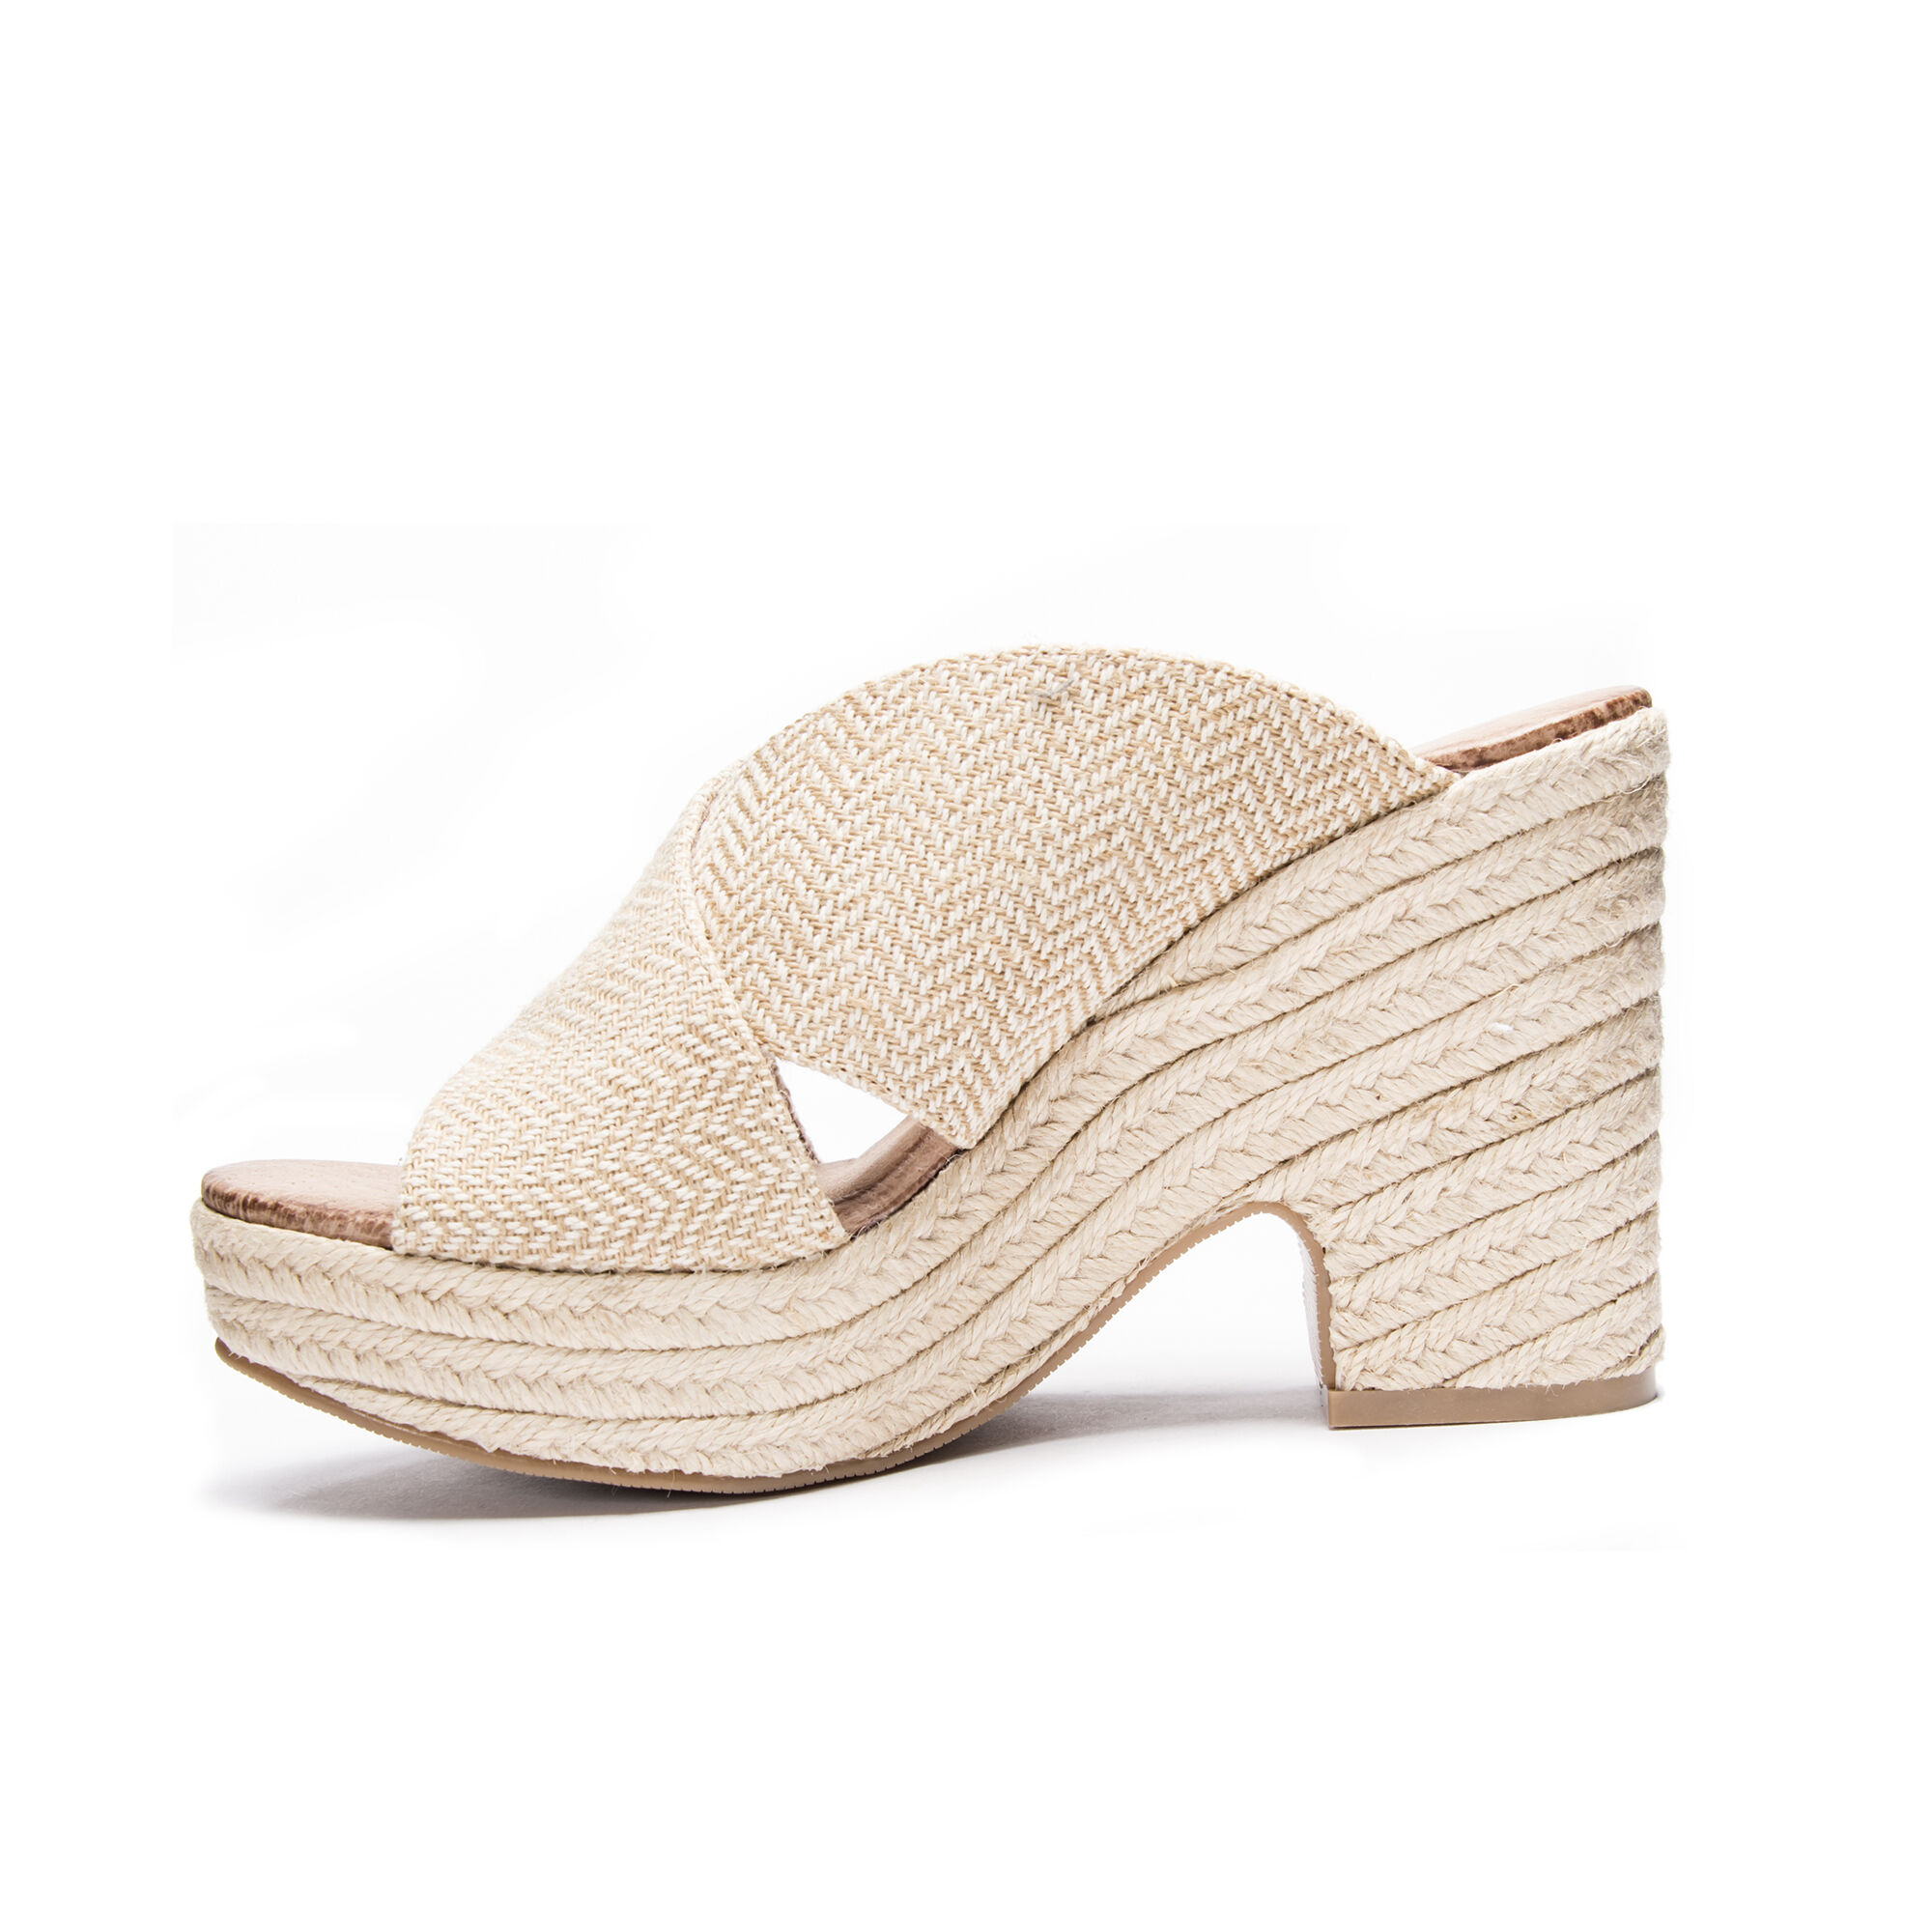 a71e14efca Chinese Laundry Quay Woven Wedge Sandal | Chinese Laundry